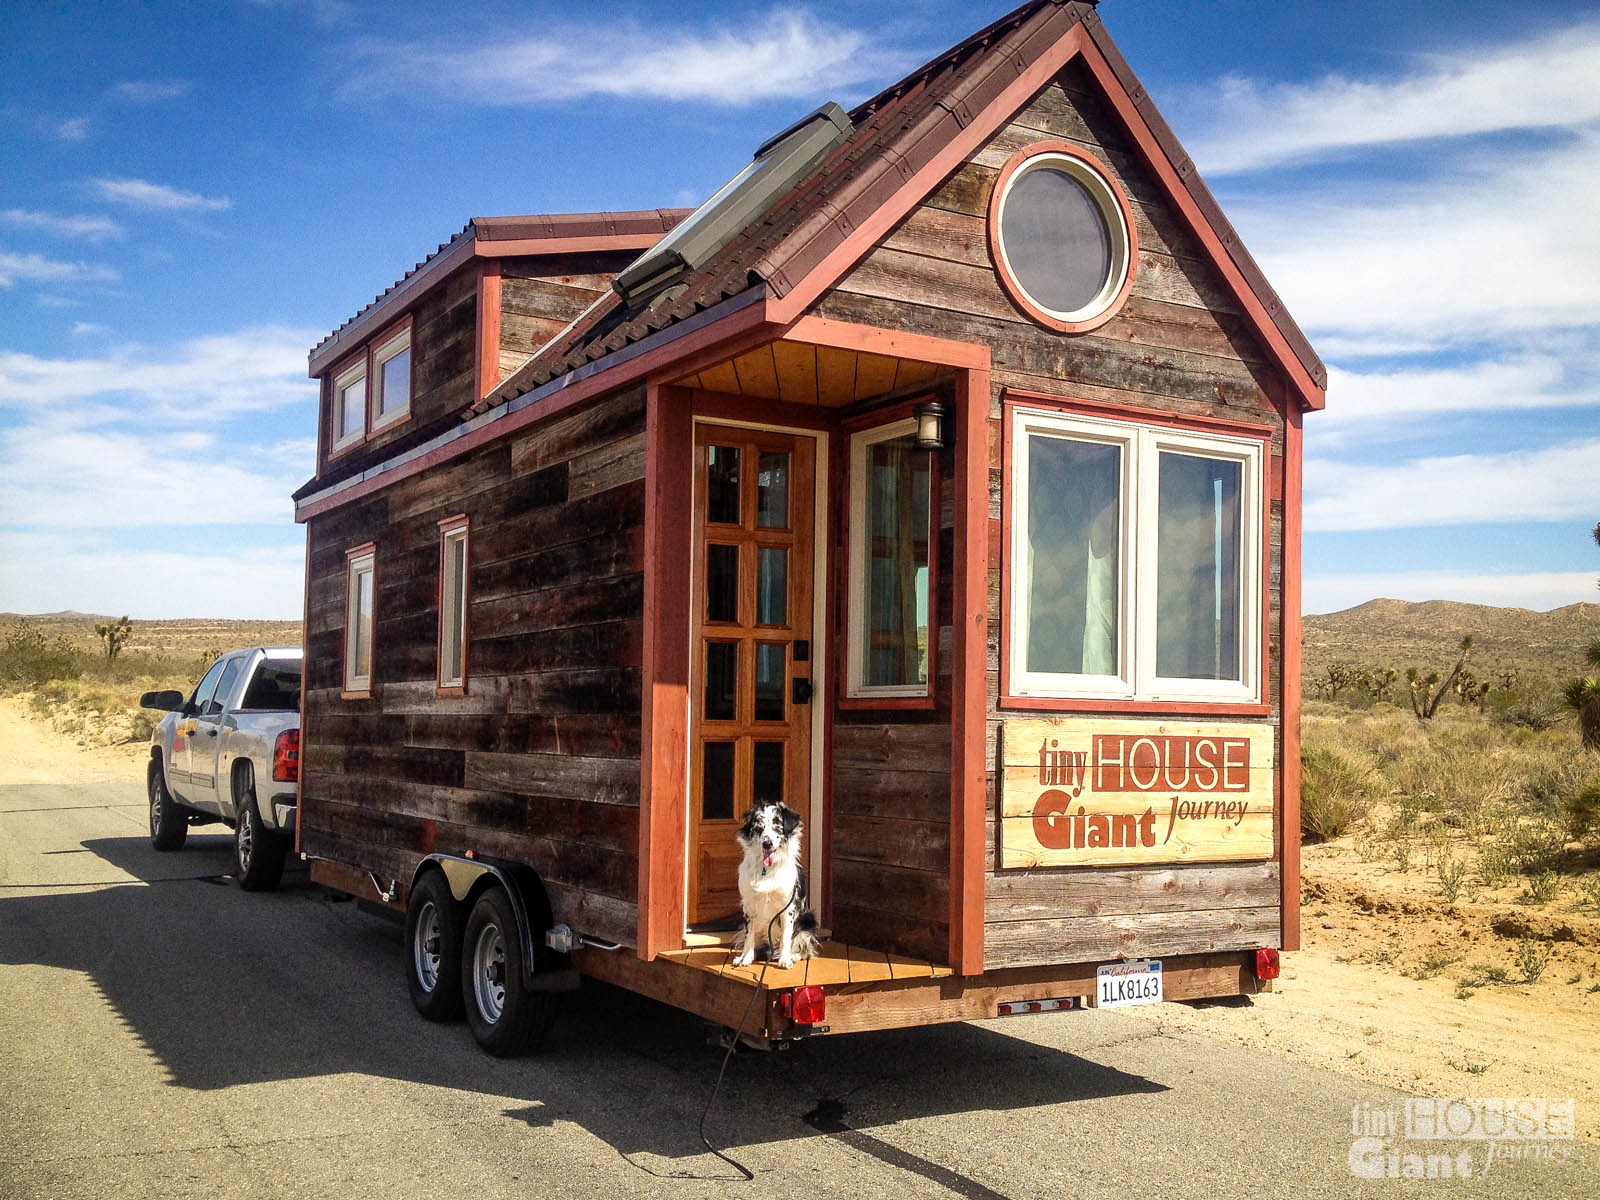 Uh oh, happy birthday Lady ElDi! Tiny-house-giant-journey-first-trip-2-0021